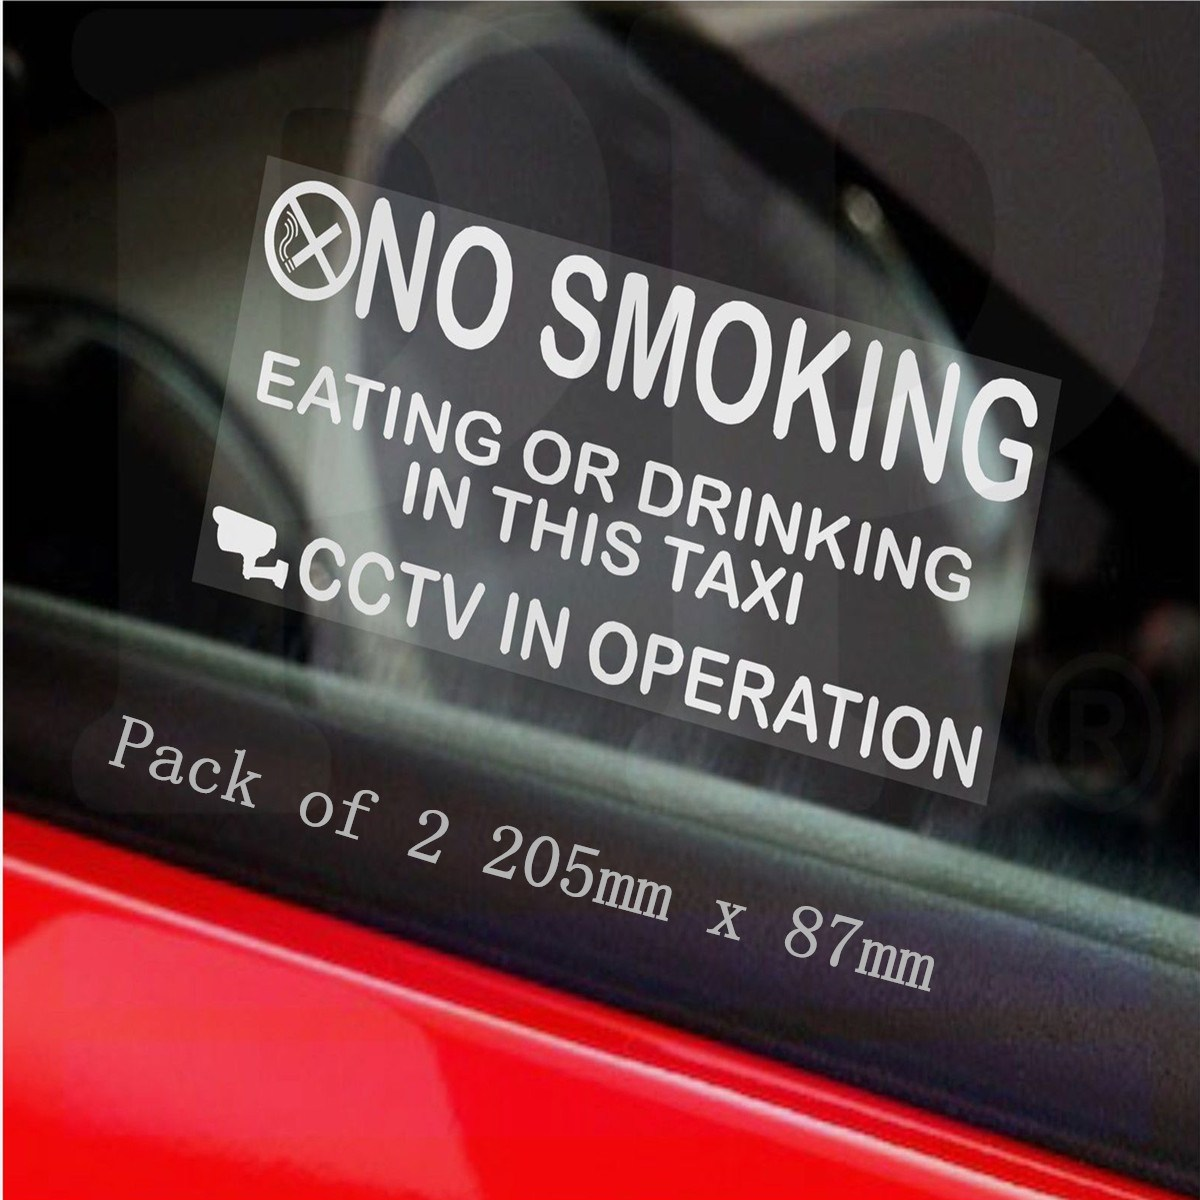 NEW Safurance 2 x Taxi/Minicab Warning Stickers-NO SMOKING Drinking-Cab CCTV Sign Security fire dept no problem metal tin sign 16 x 12 5